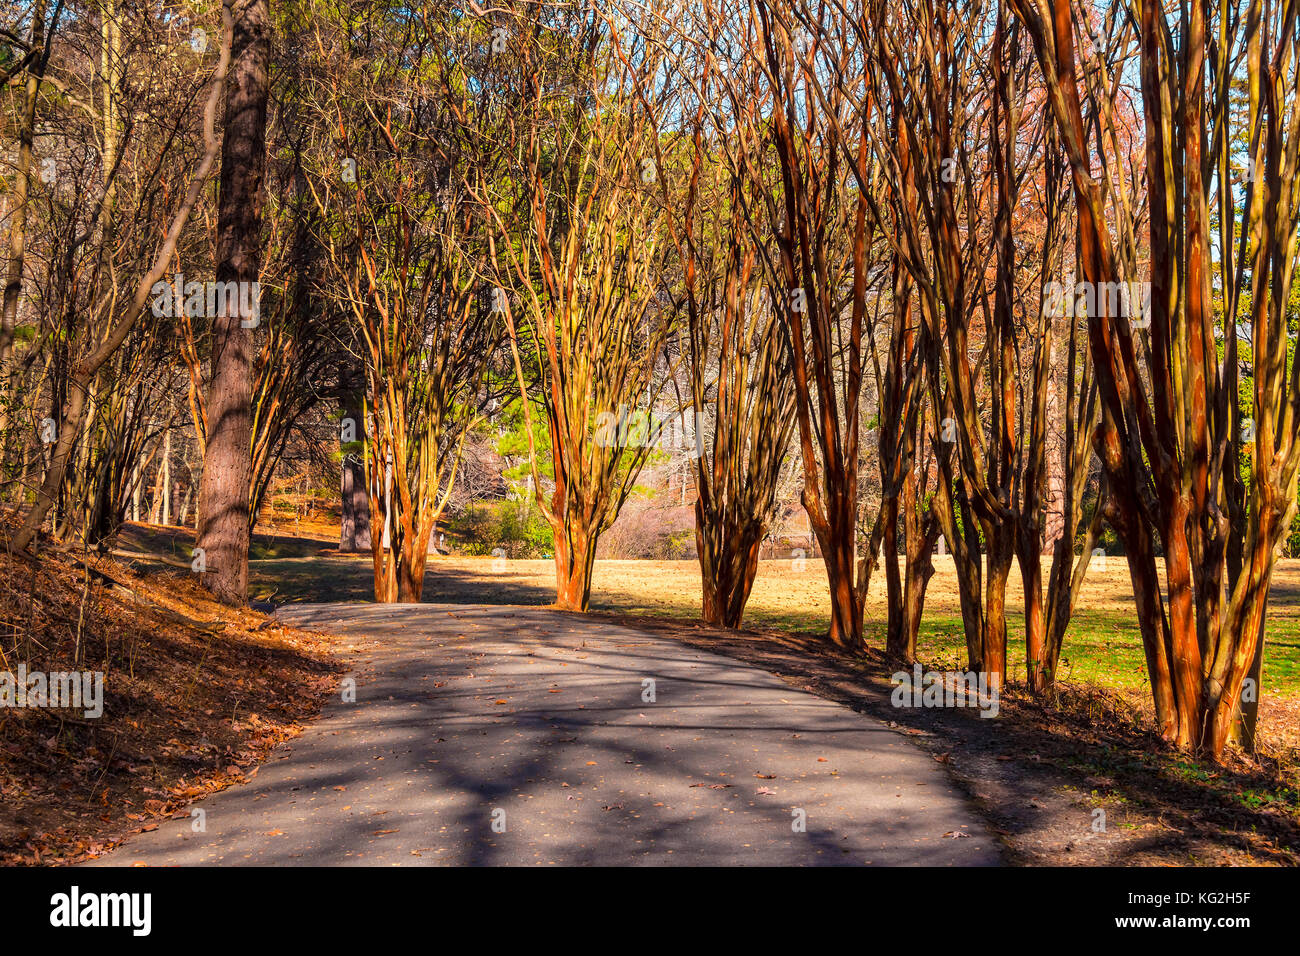 Alley with leopard trees and curved road in Lullwater Park in sunny autumn day, Atlanta, USA Stock Photo